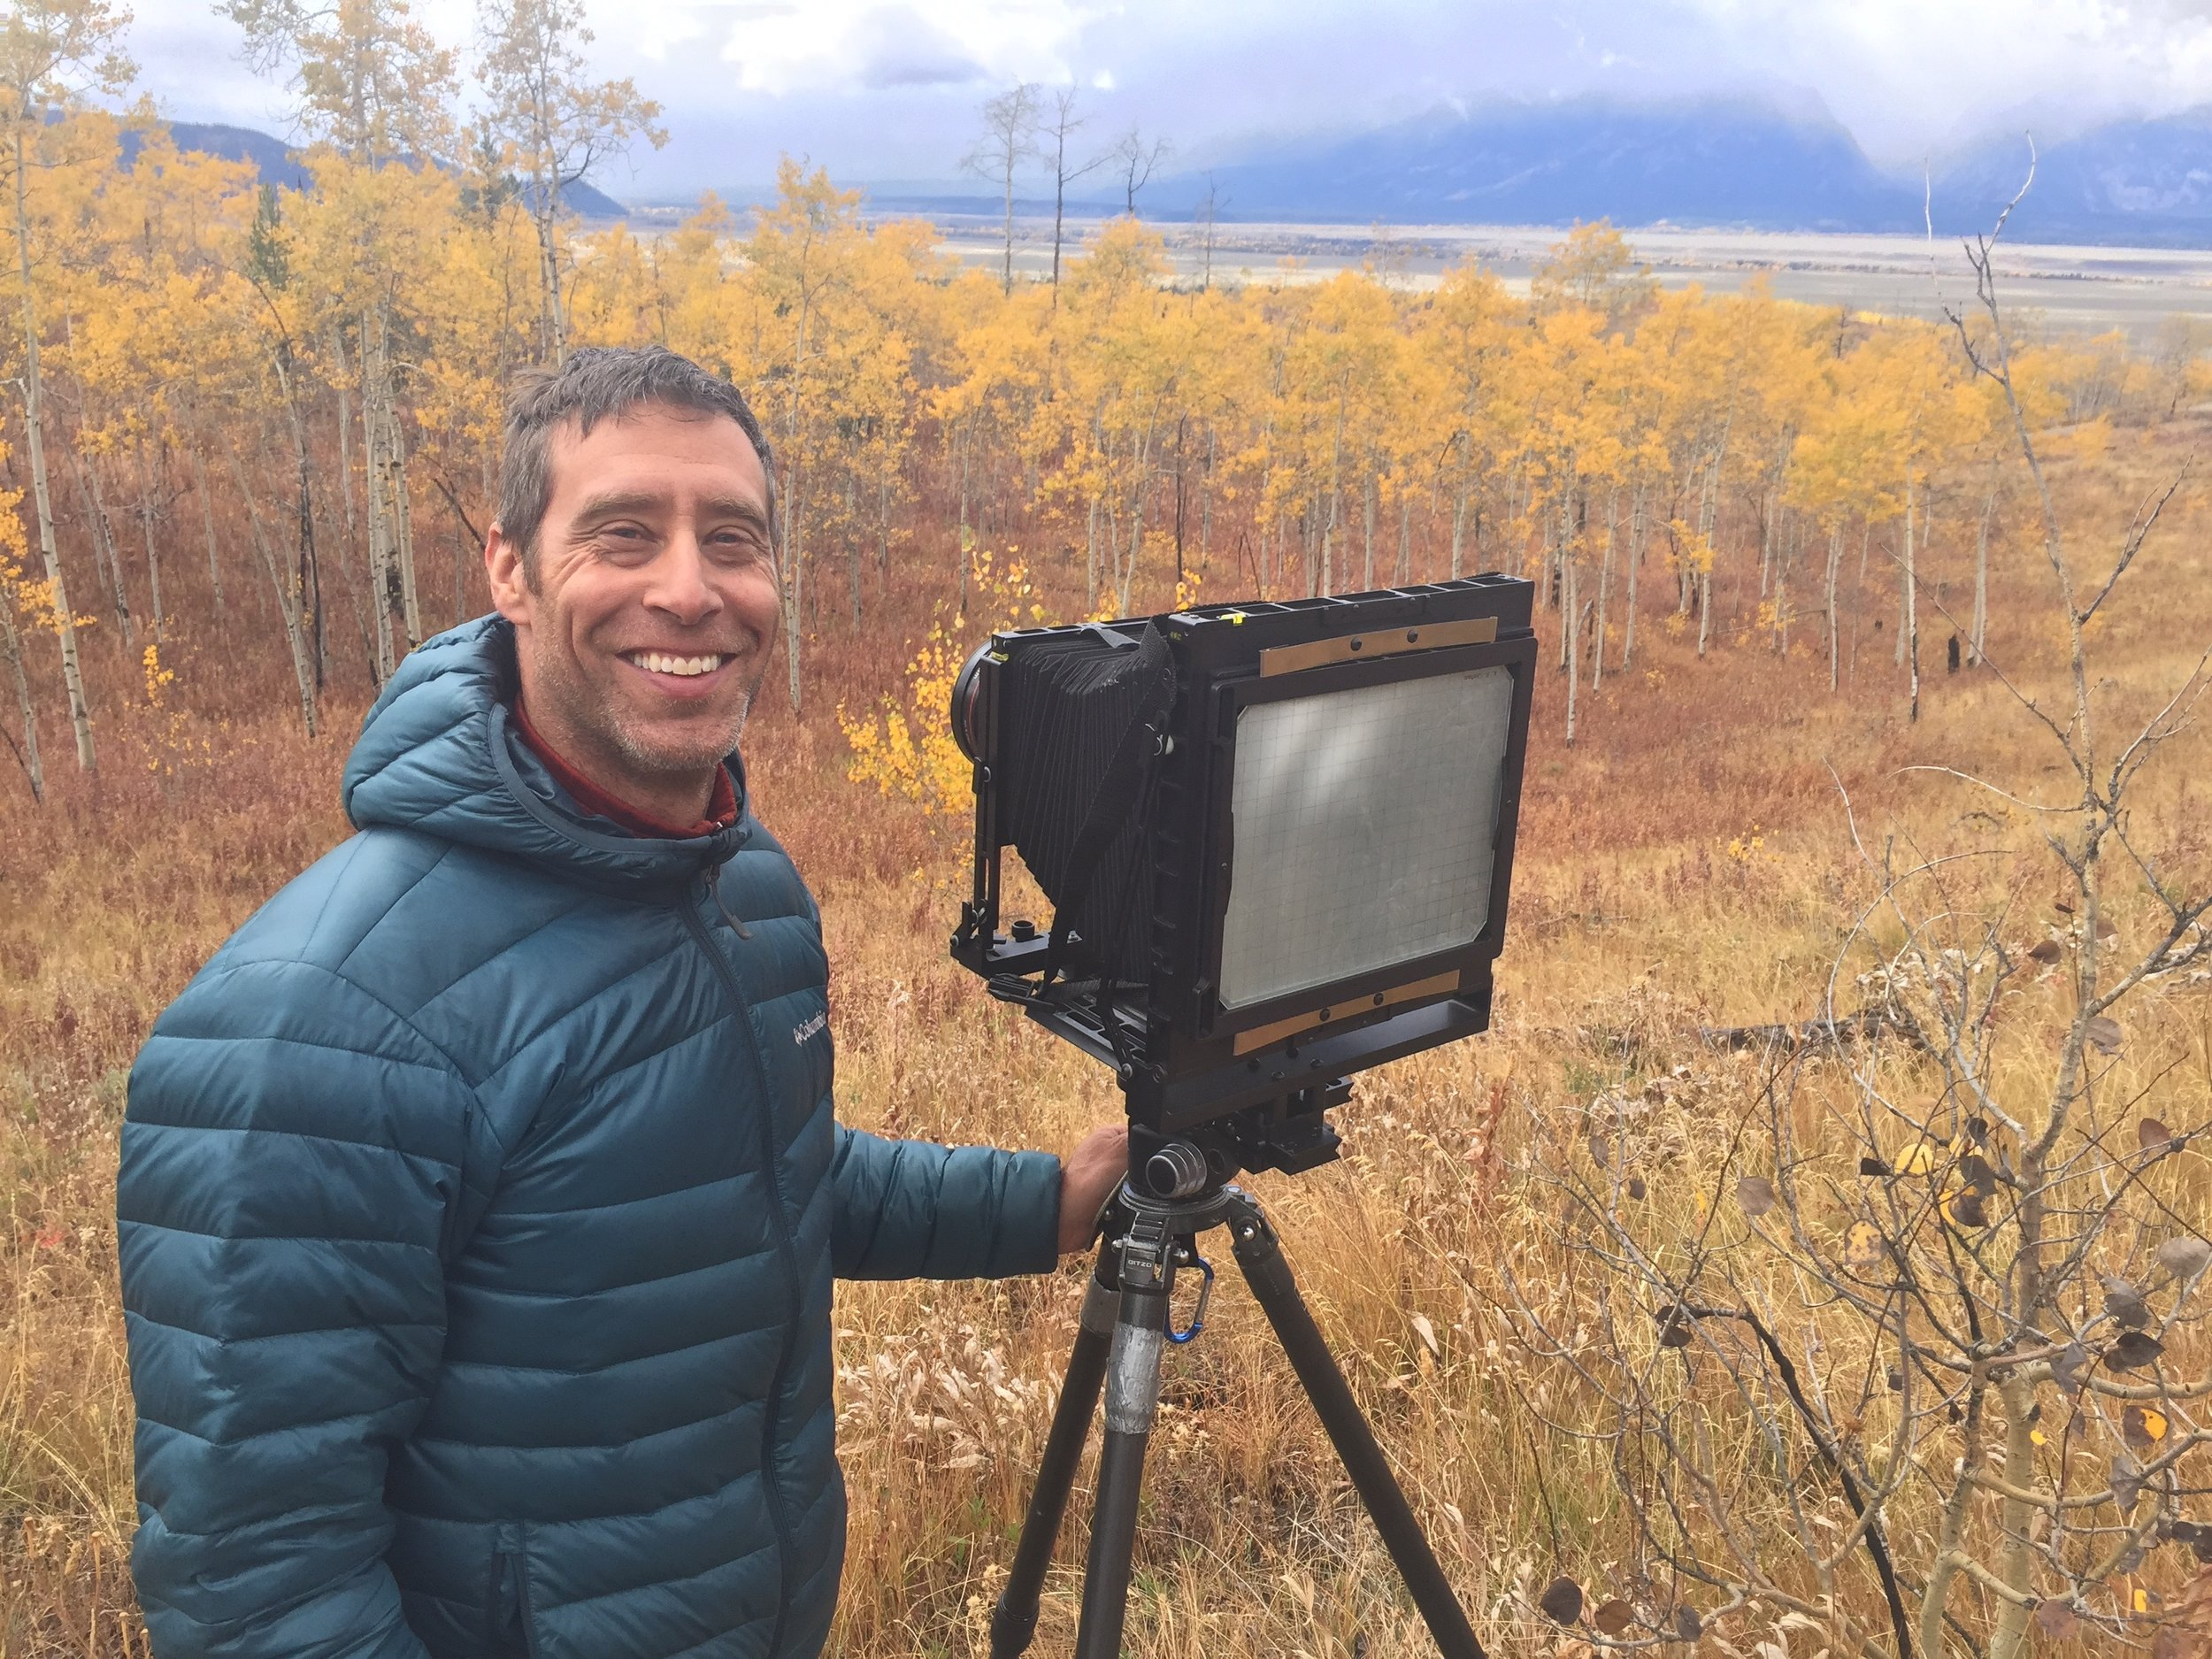 A happy photographer, Jon Paul, with his 8x10 film camera in Grand Teton National Park.